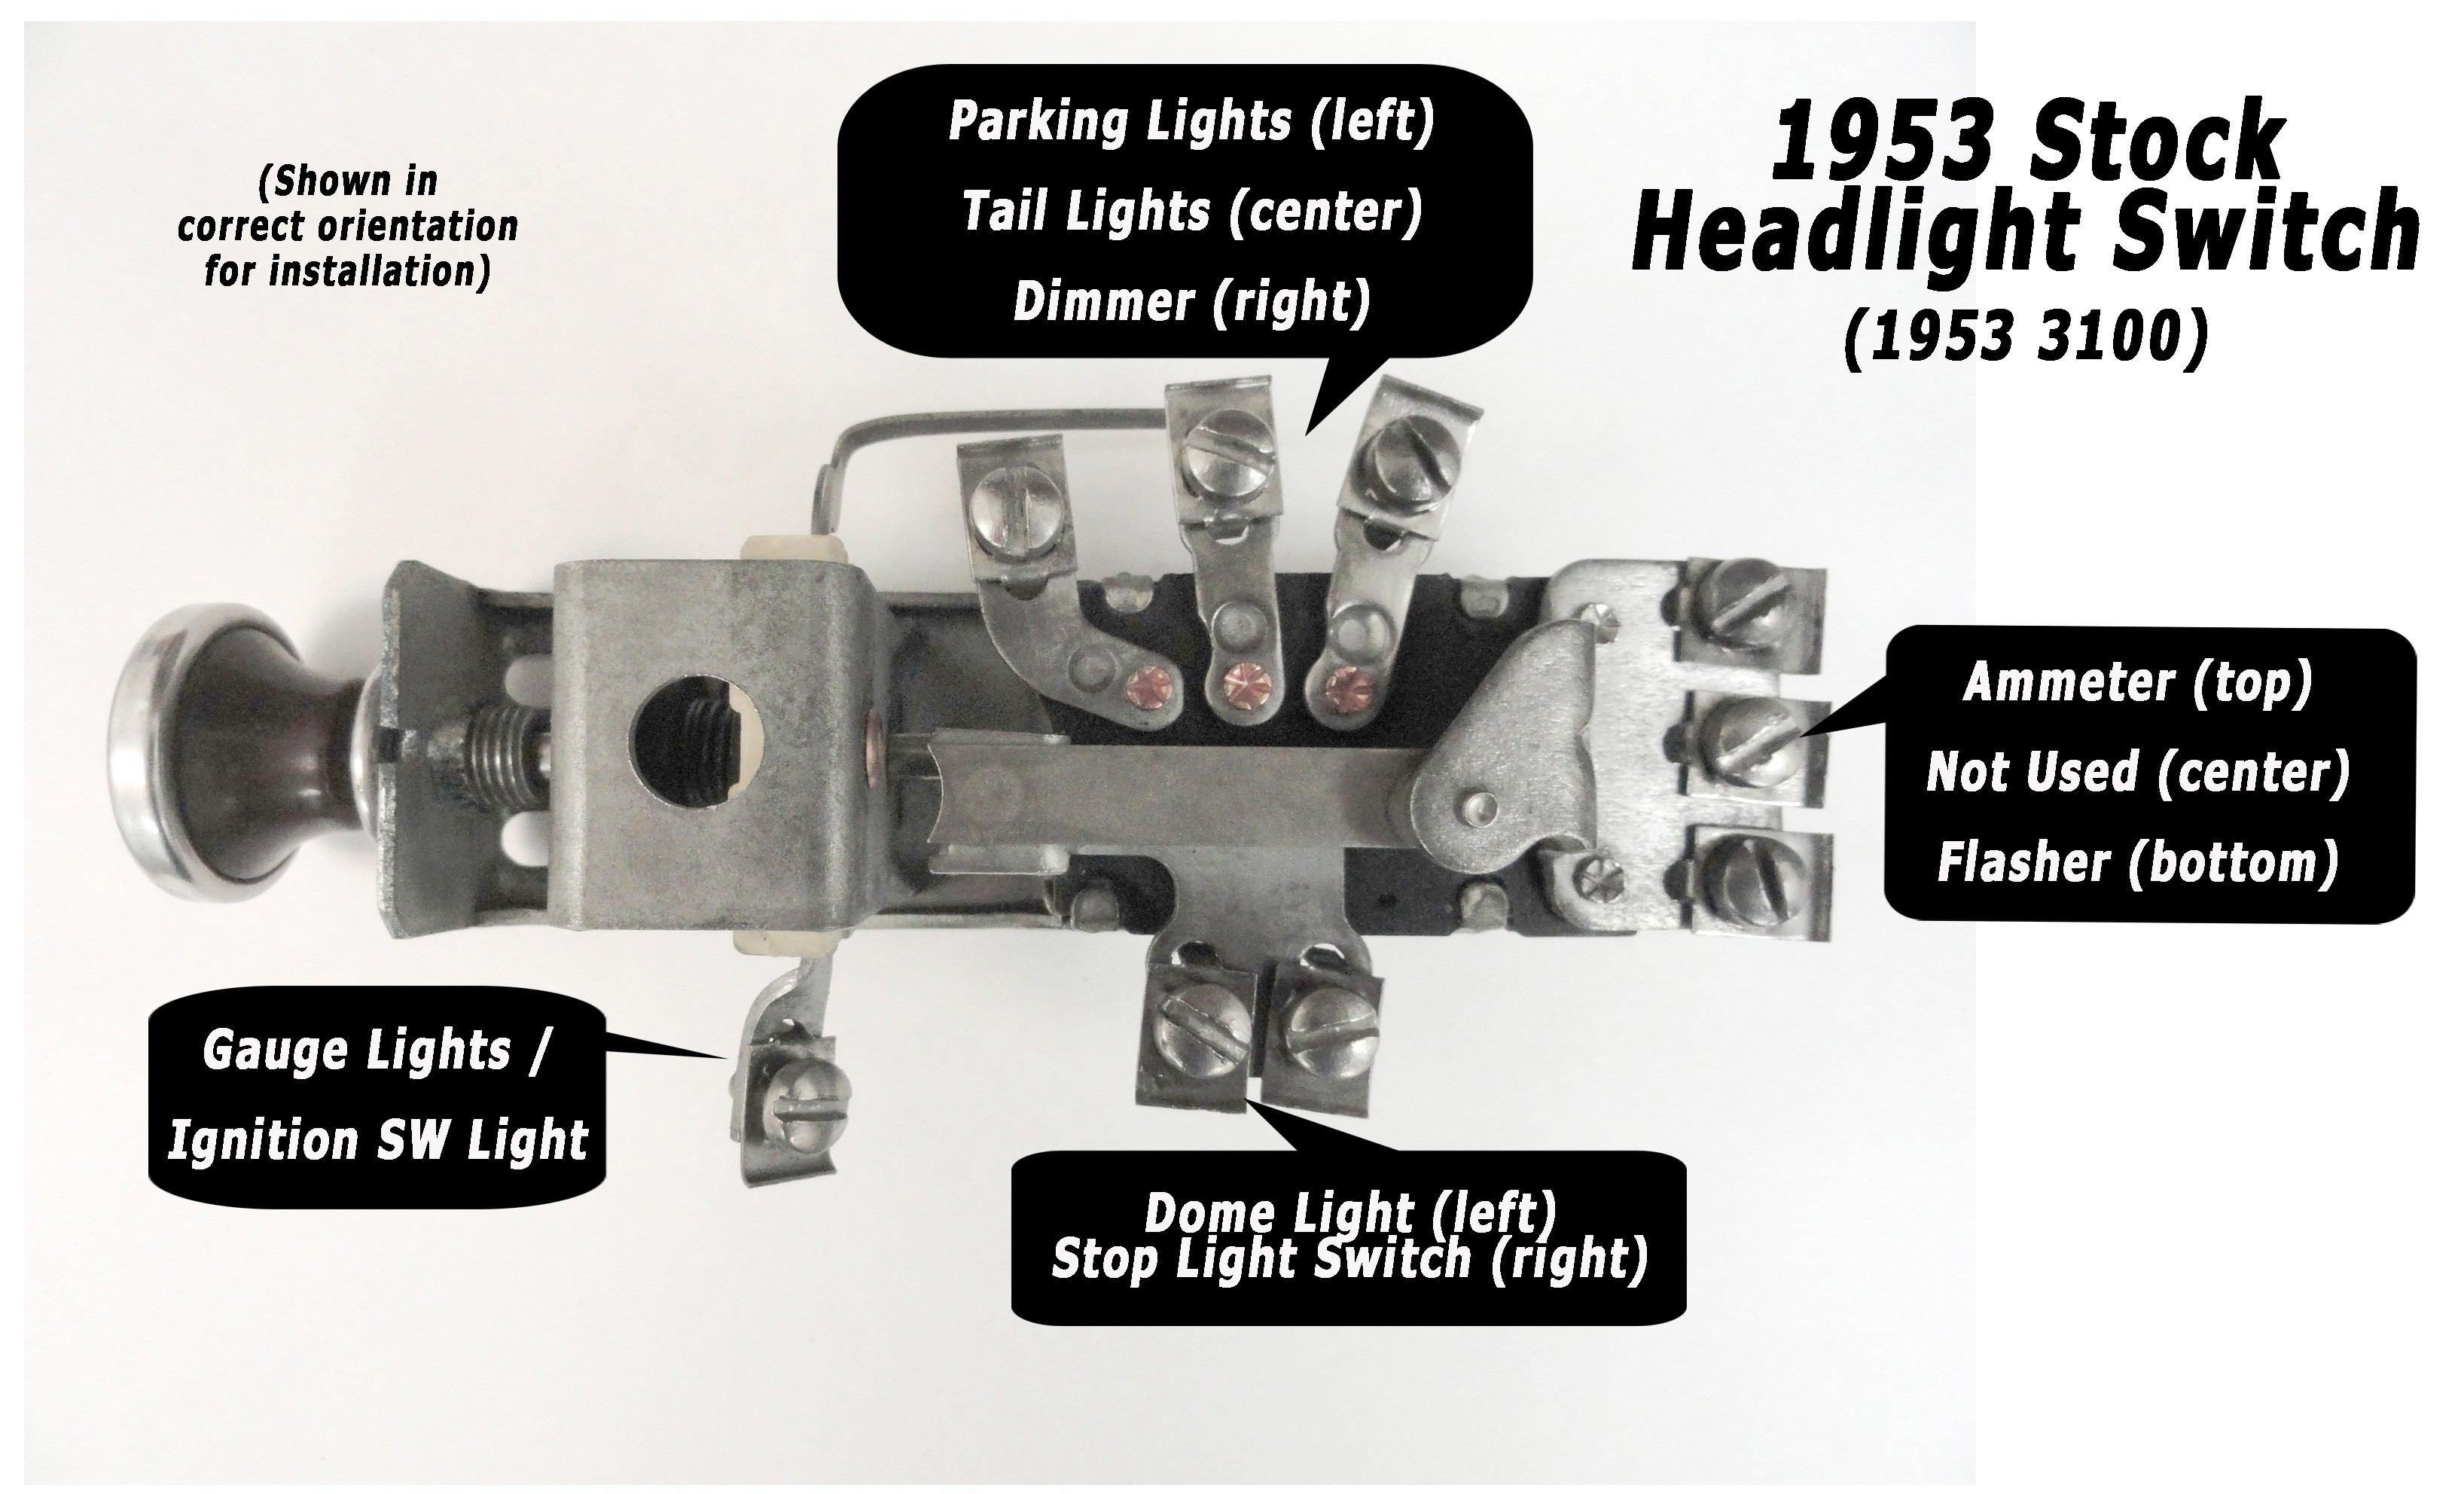 Headlight Switch Wiring Diagram Awesome Beautiful Headlight Switch Wiring Diagram Chevy Truck Diagram